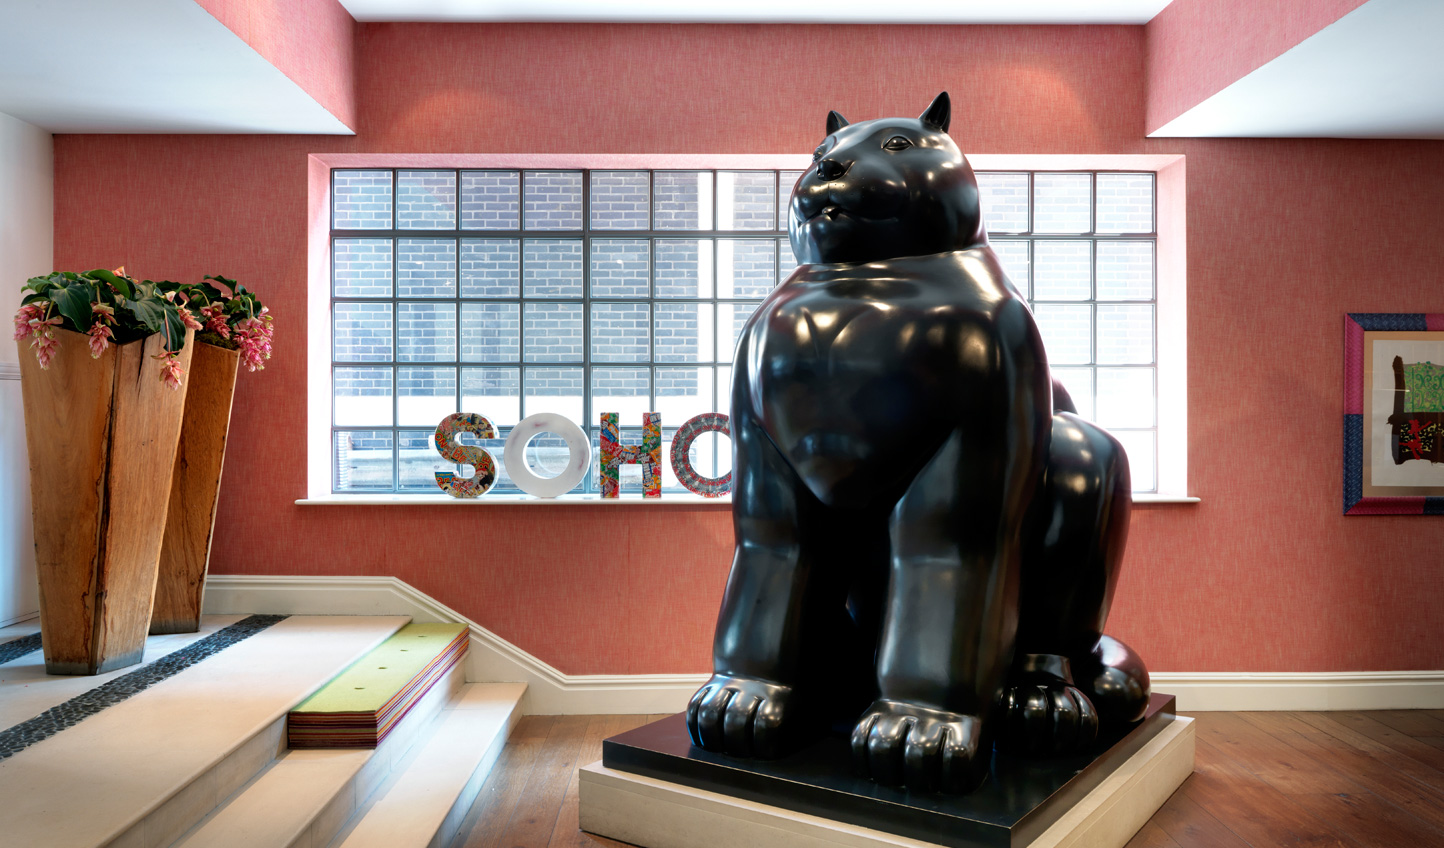 Iconic artworks by Botero